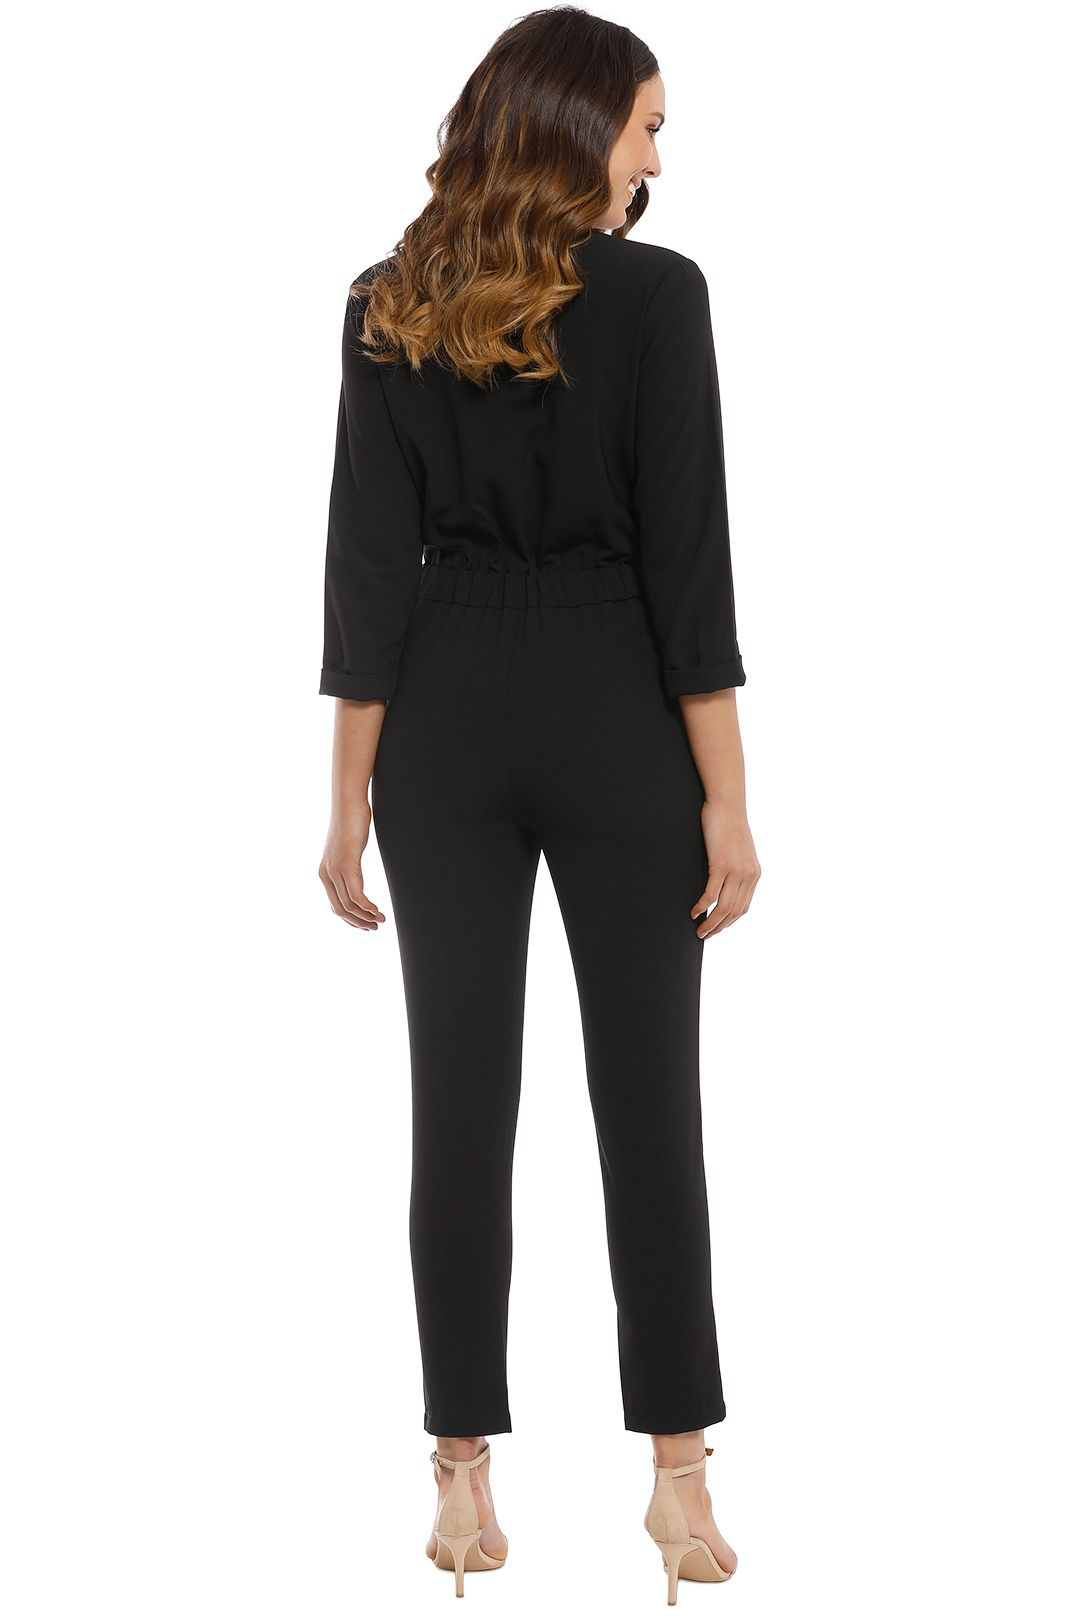 Iris and Ink - Liberty Crepe Jumpsuit - Black - Back